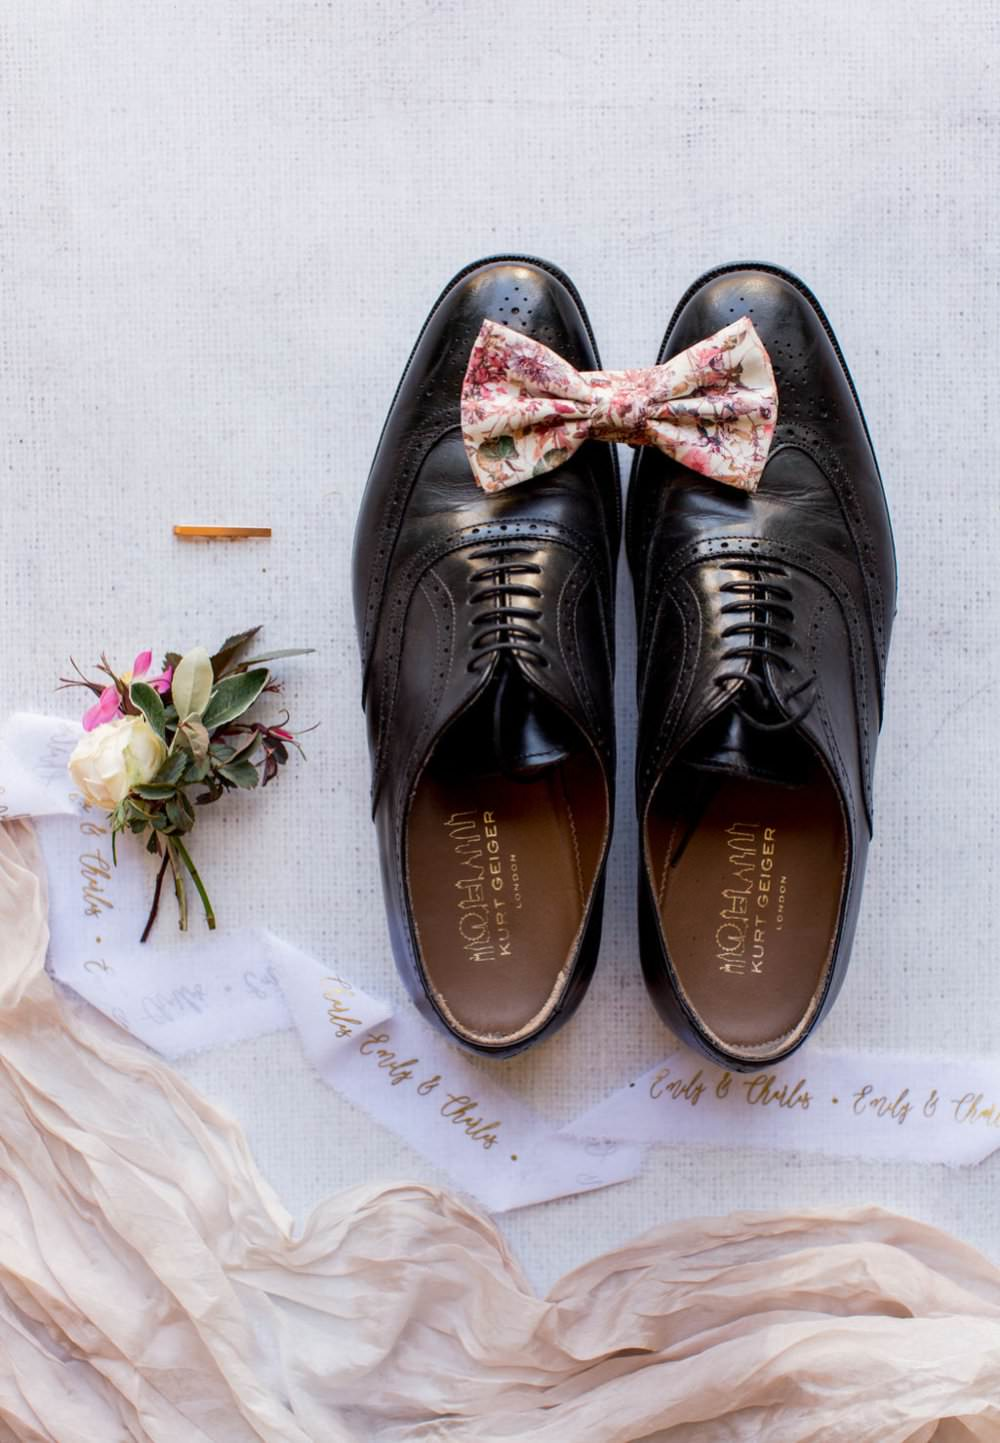 Groom Shoes Bow Tie Accessories English Garden Wedding Inspiration Philippa Sian Photography